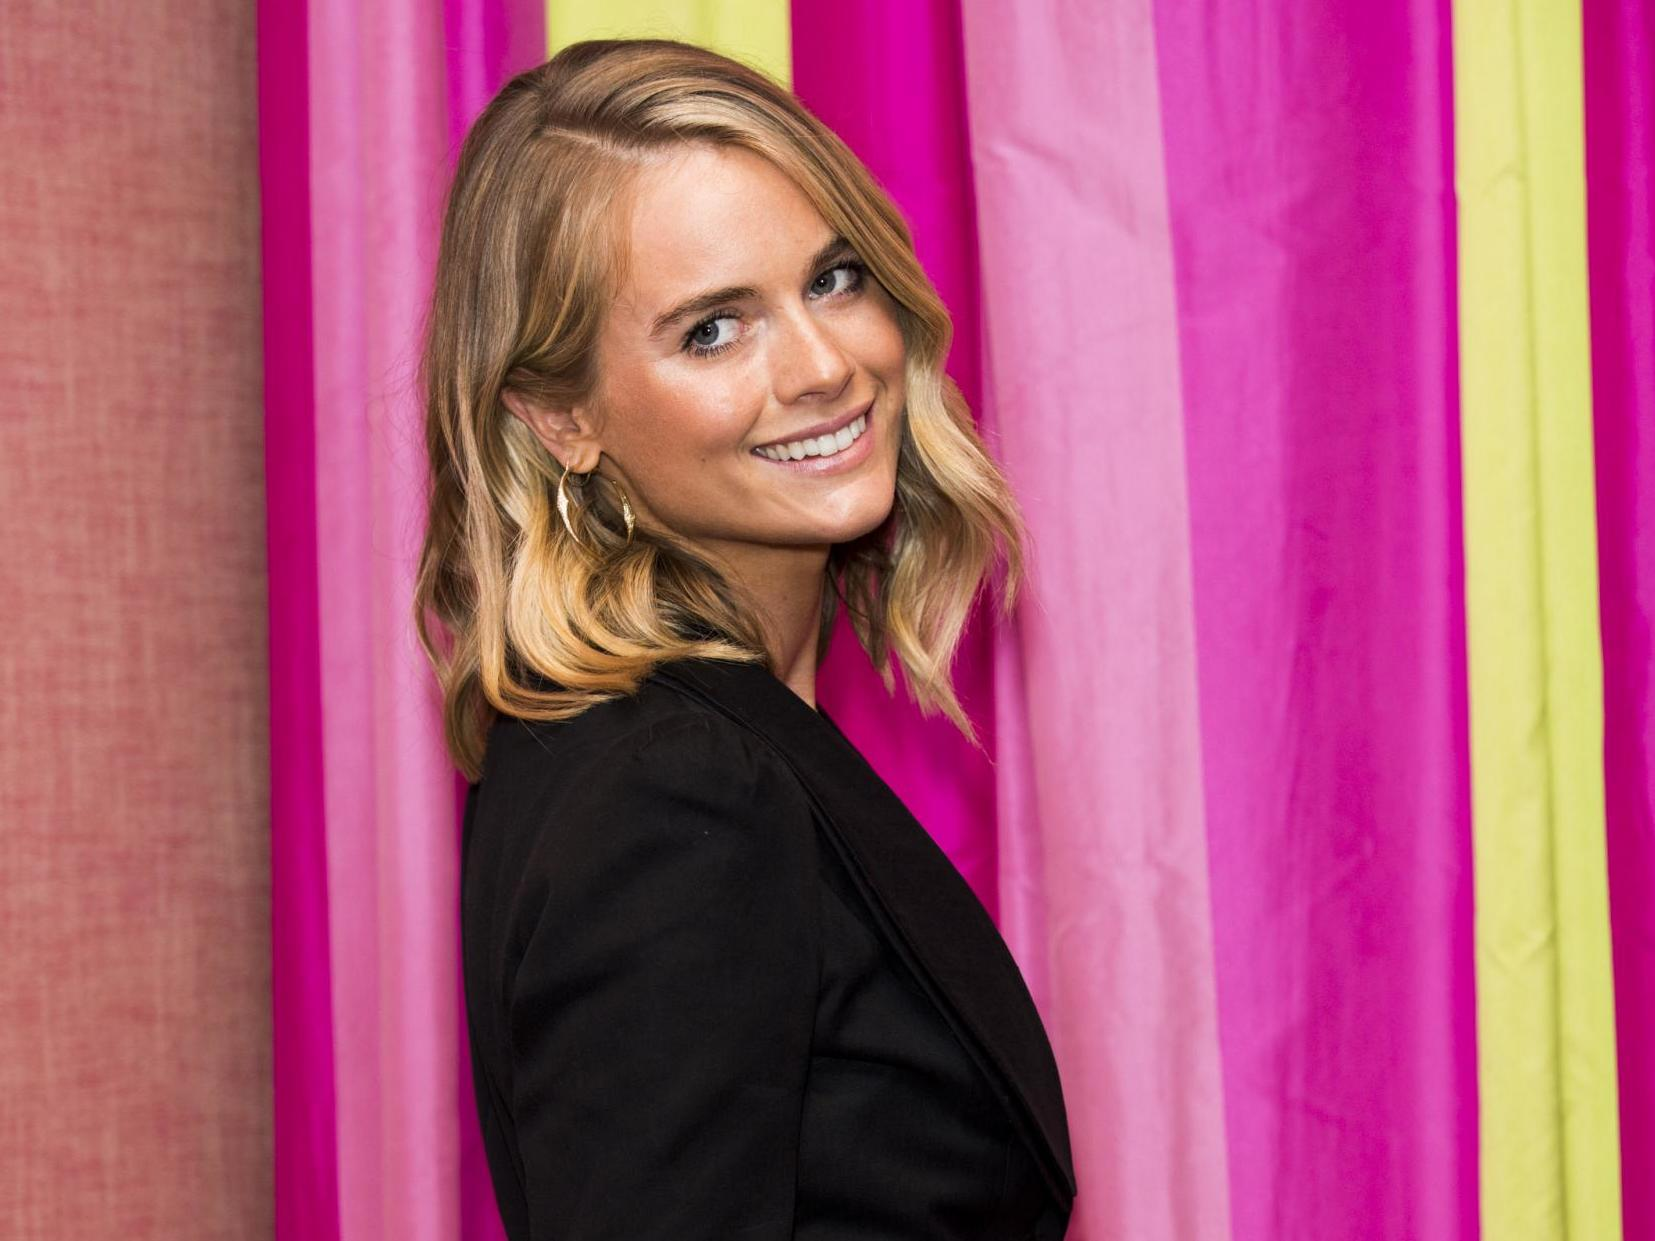 Cressida Bonas feared being labelled an 'it girl' after relationship with Prince Harry